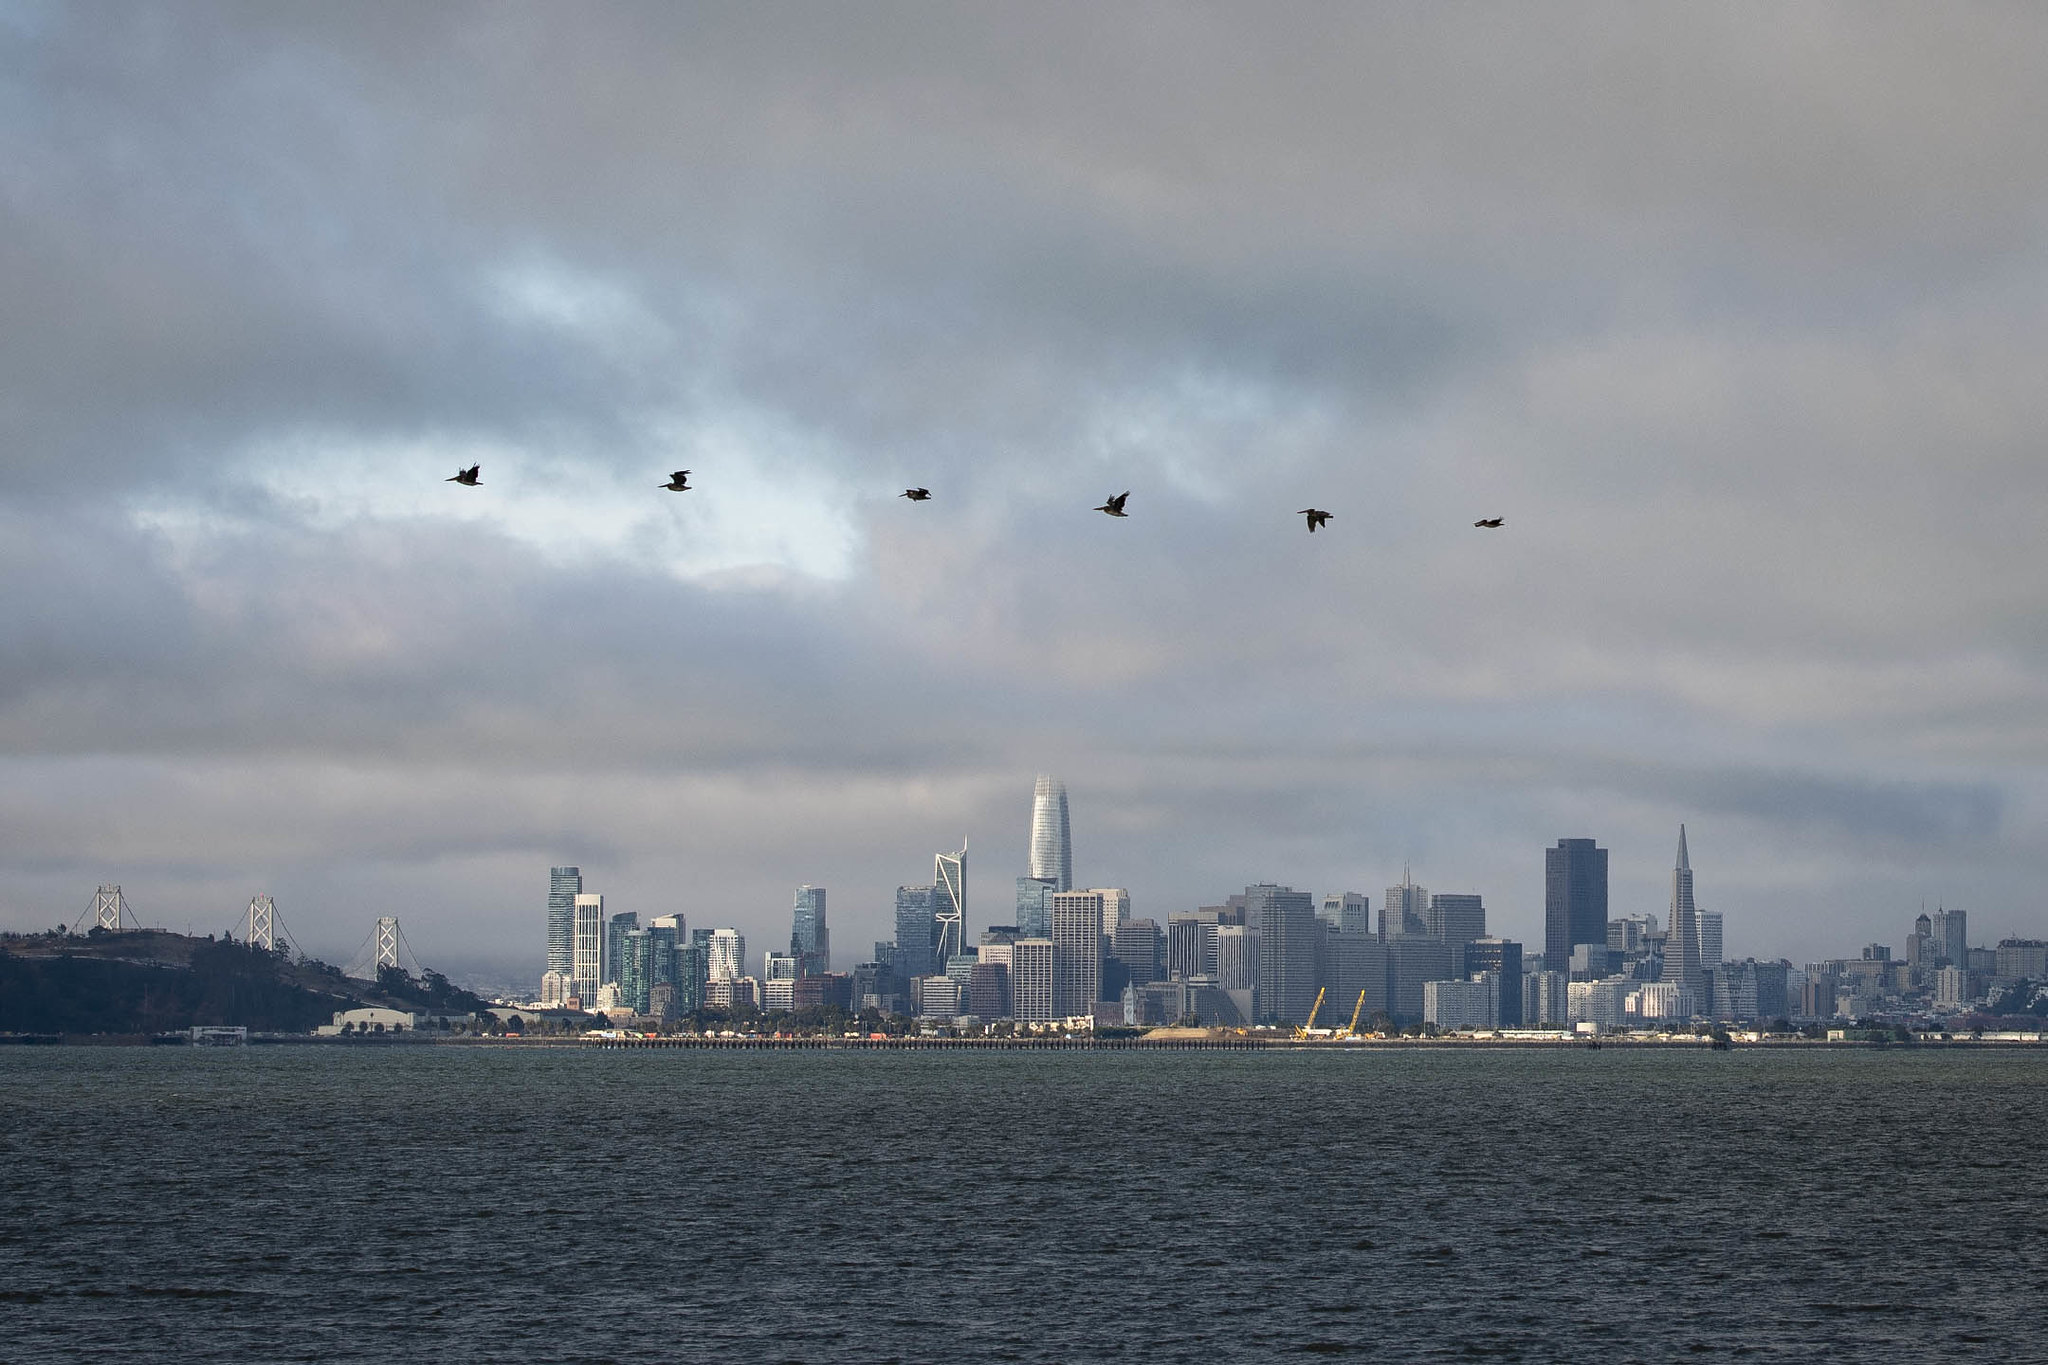 Pelicans flying across San Francisco bay with skyline in background